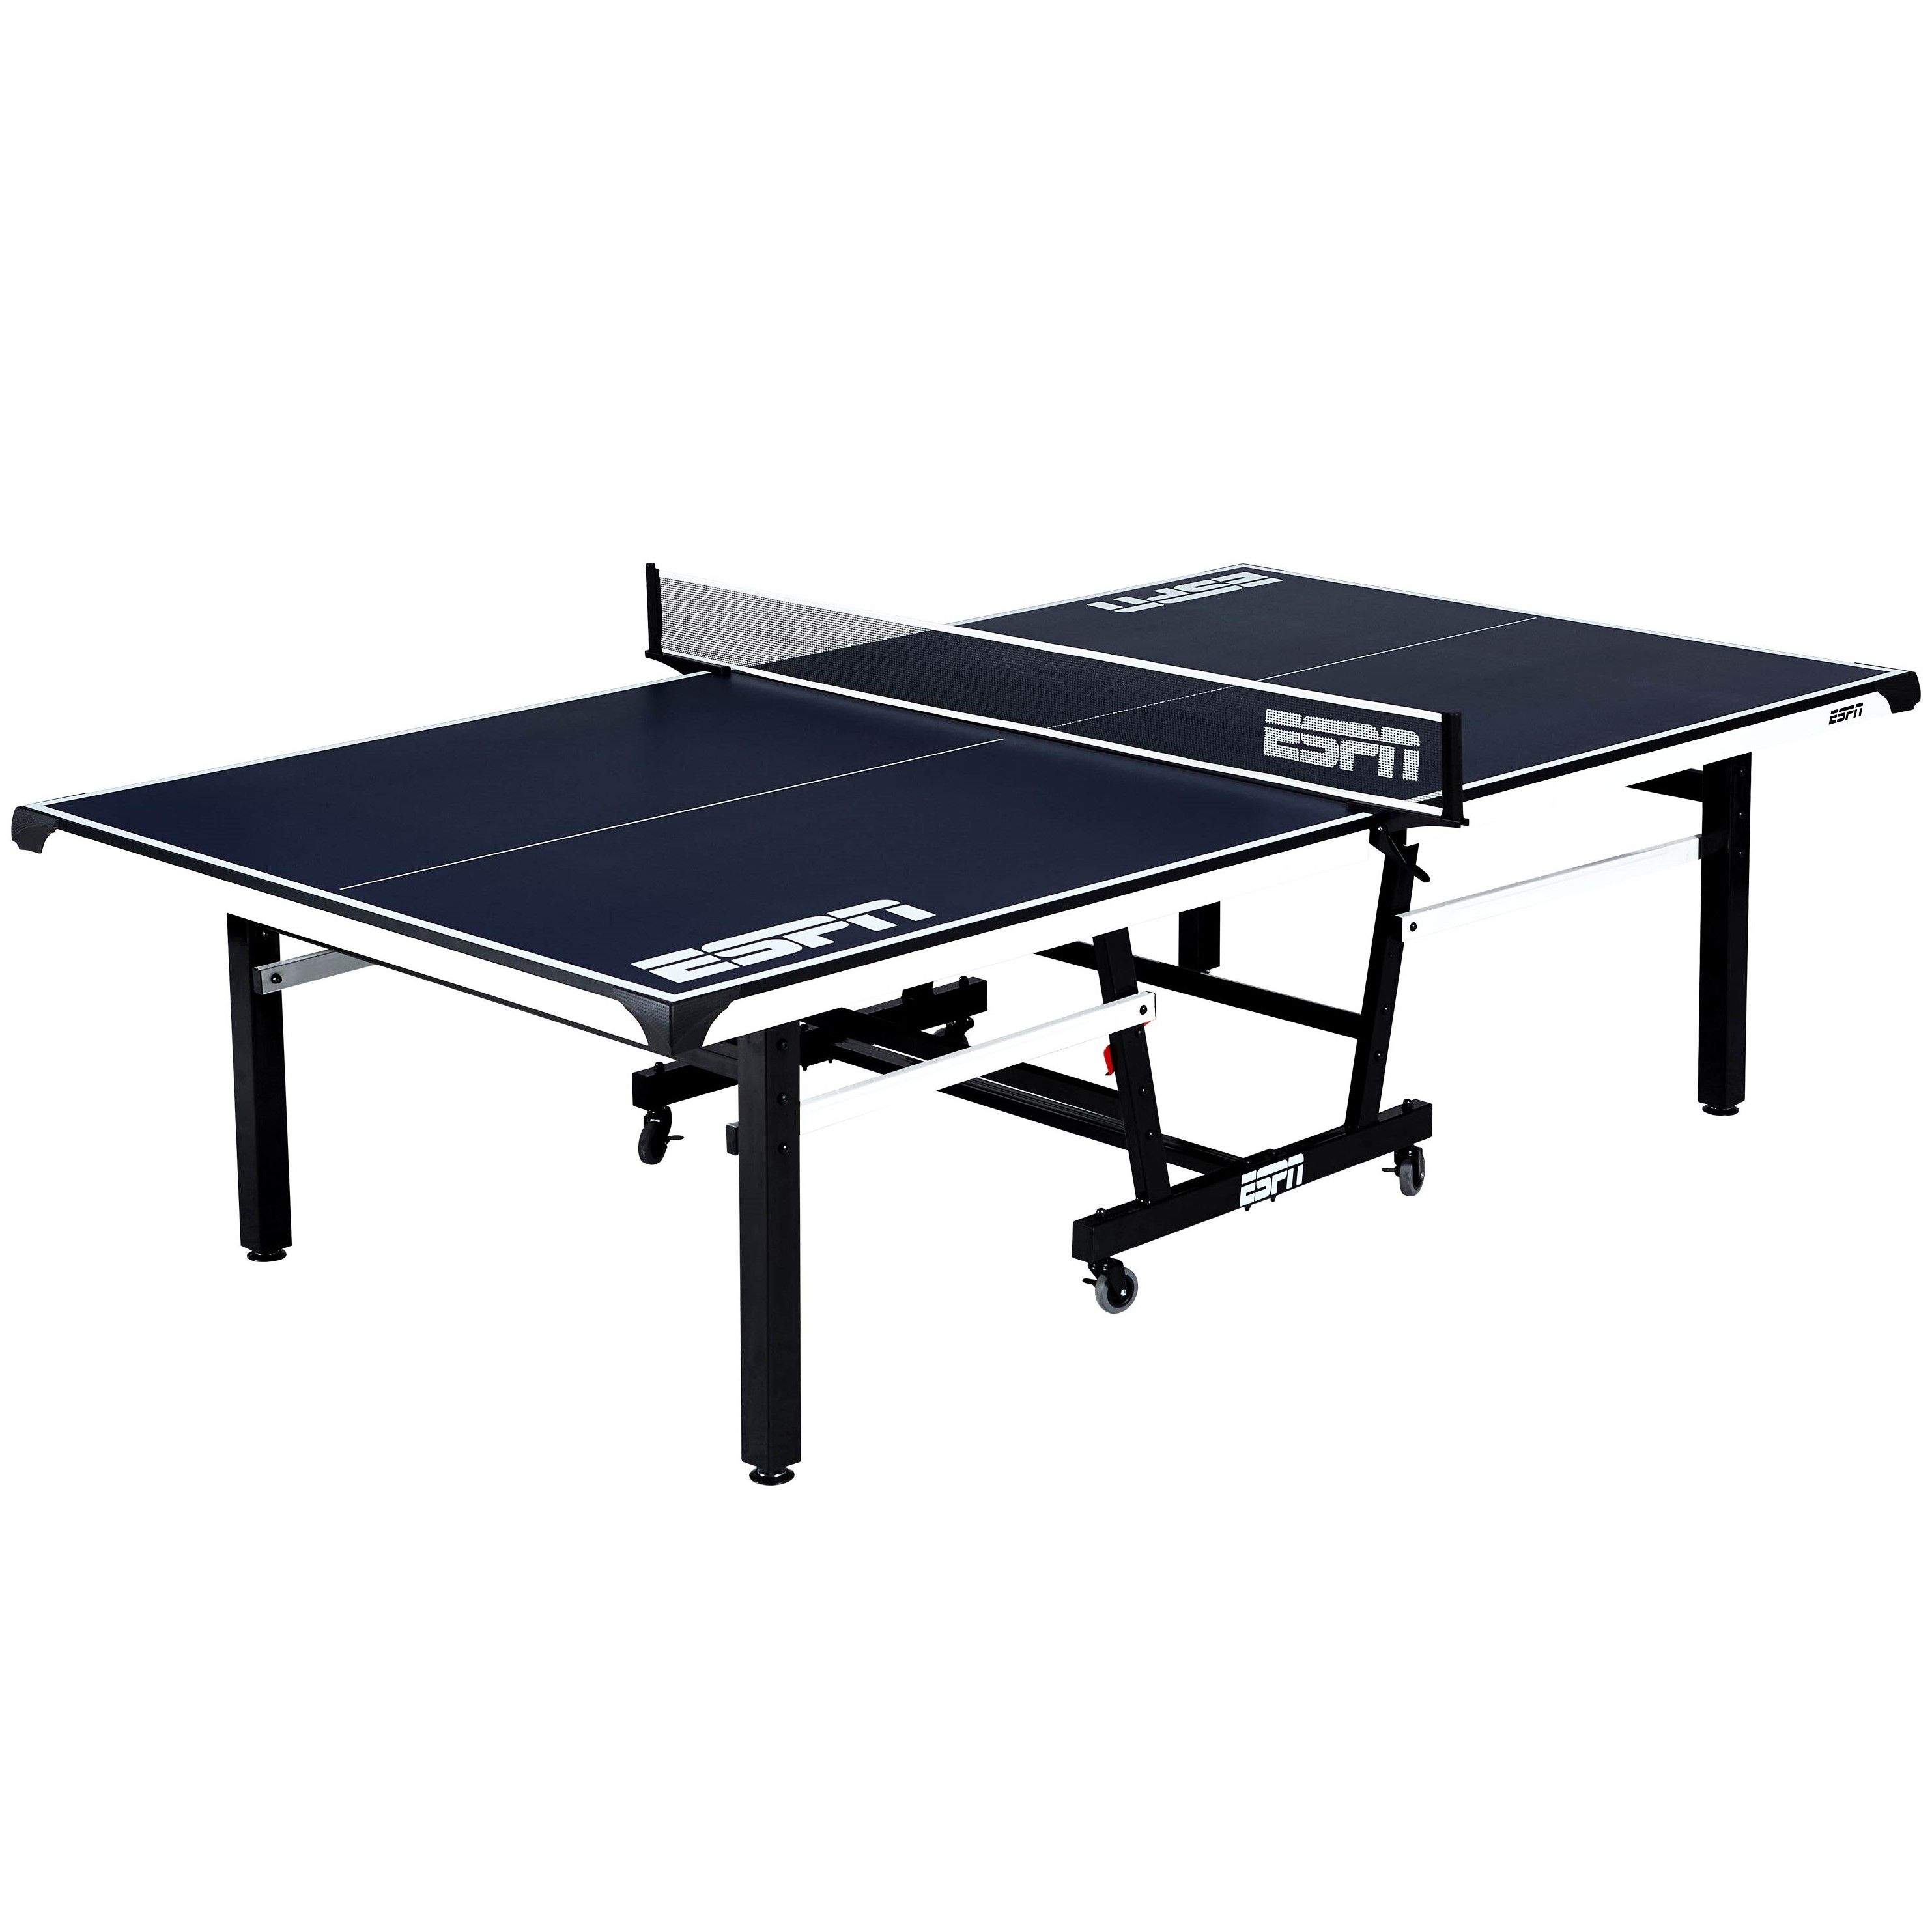 Espn Official Size 18mm 2 Piece Table Tennis Table With Table Cover 1 Indoor Model Walmart Com In 2021 Table Tennis Table Covers Espn